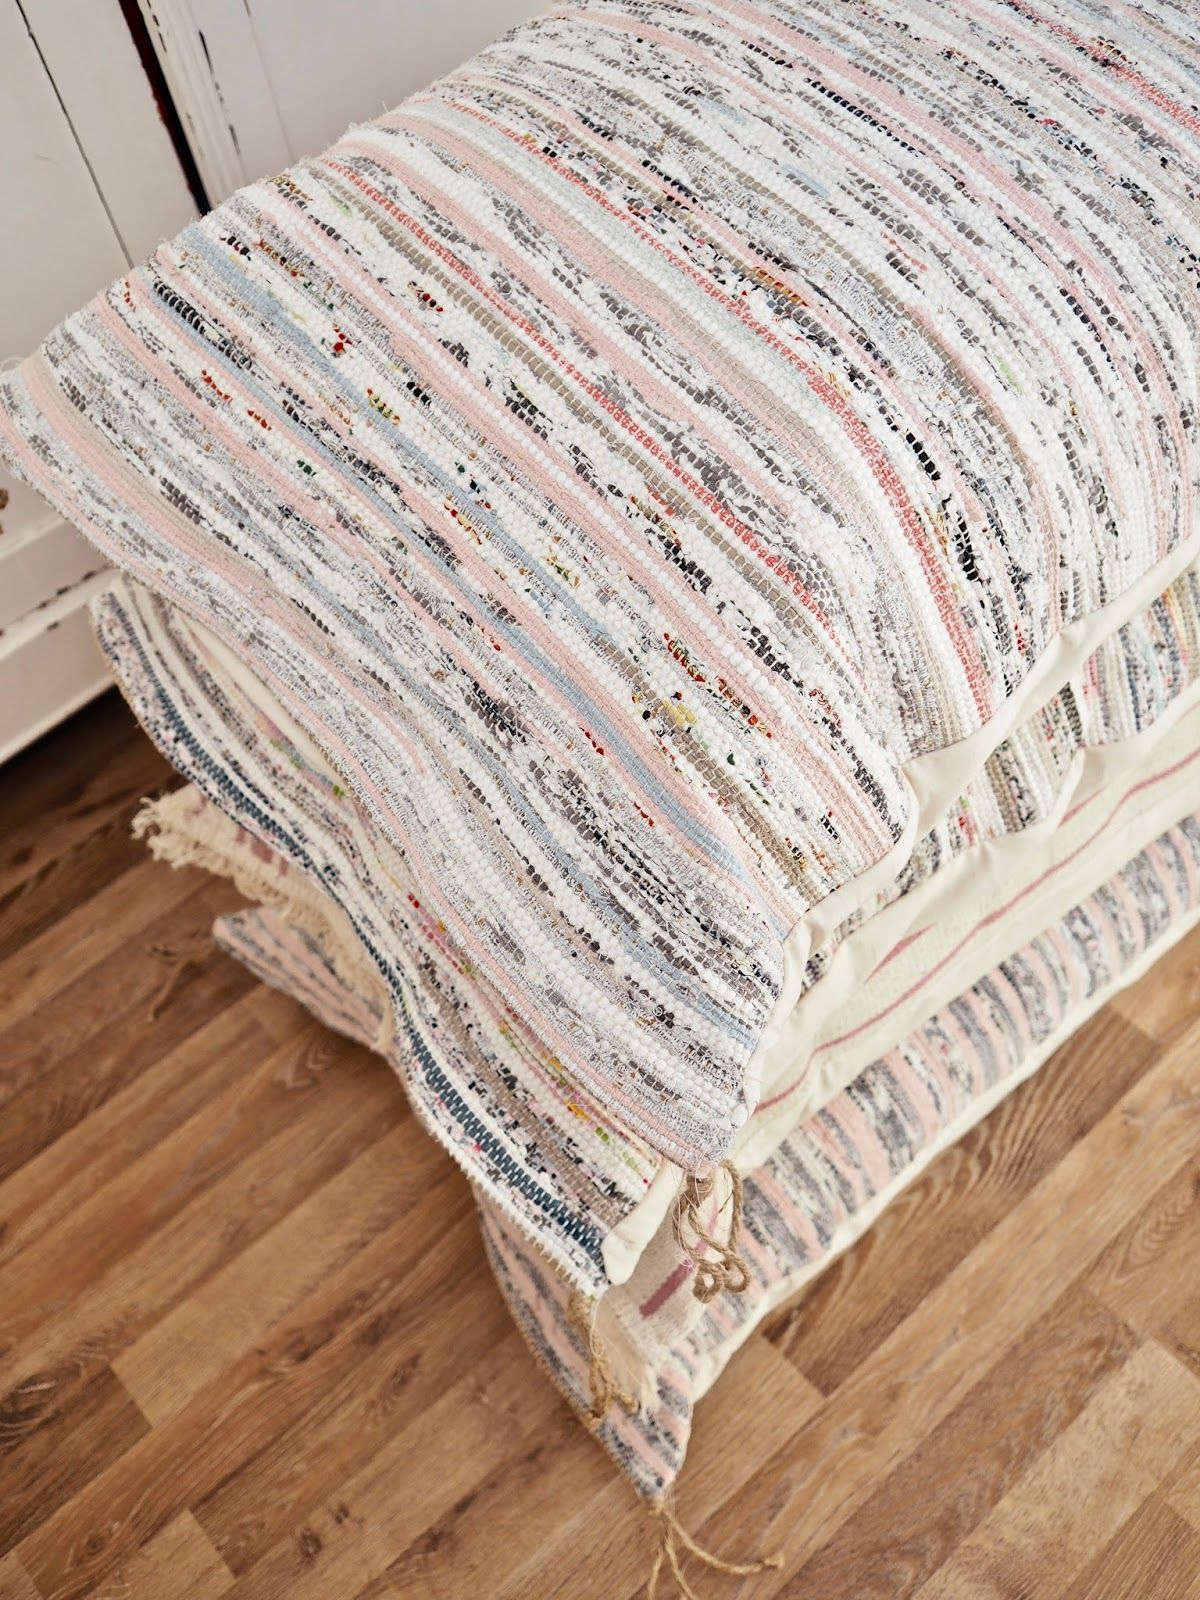 Ikea Teppich Tanum Ikea Rug Hack Turn The Tanum Rug Into A Pillow Home